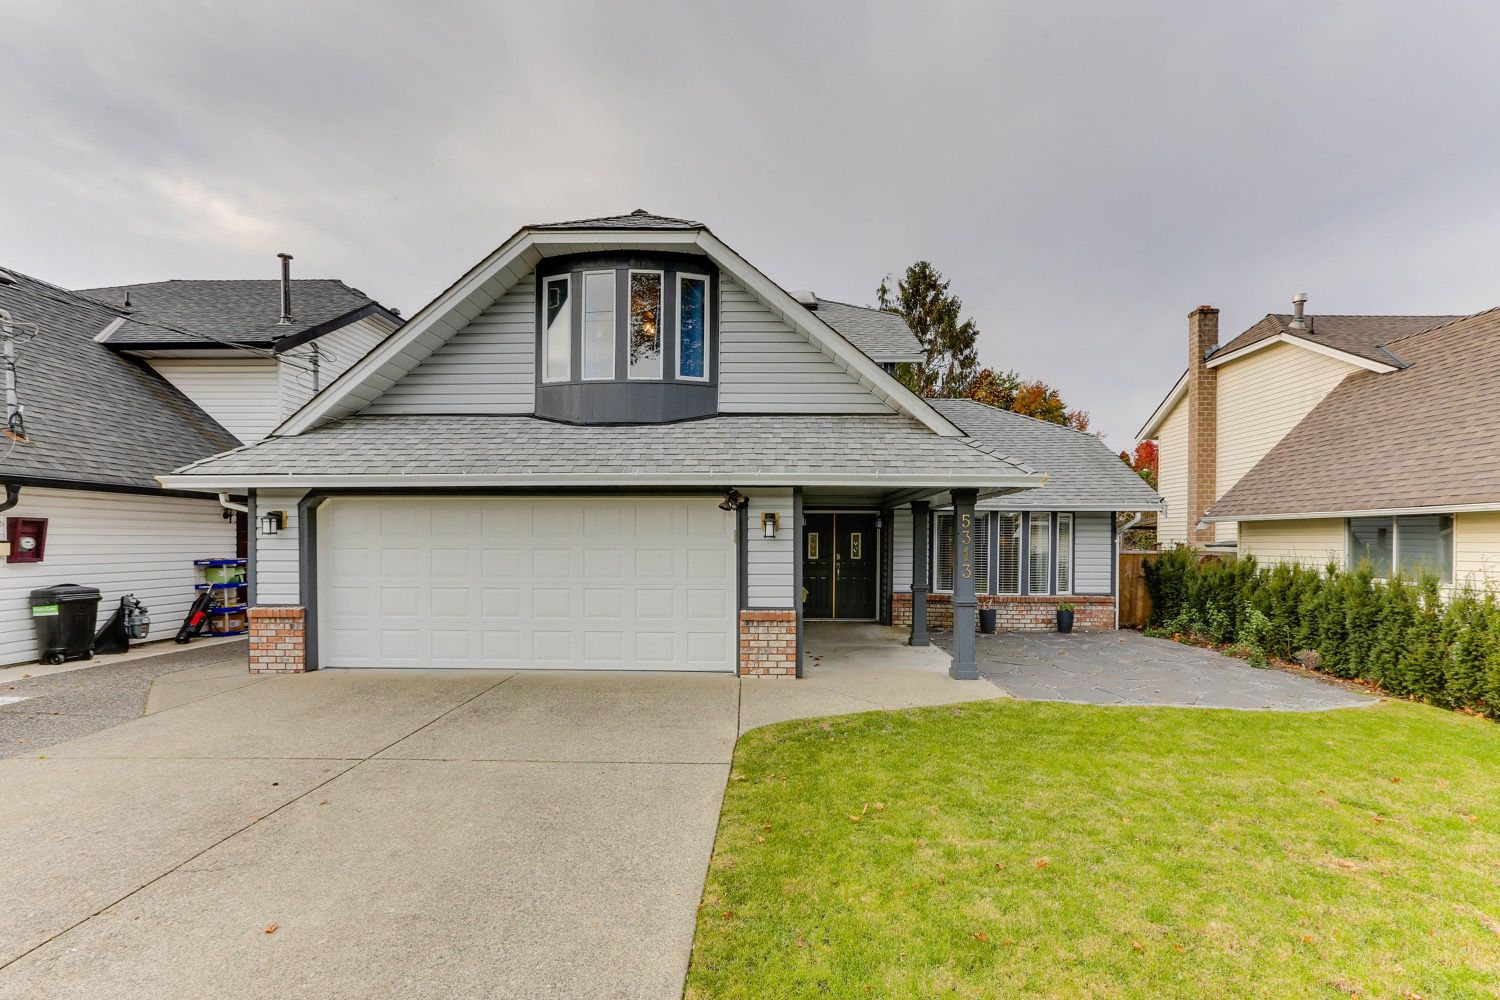 Main Photo: 5313 WESTMINSTER Avenue in Delta: Neilsen Grove House for sale (Ladner)  : MLS®# R2514852